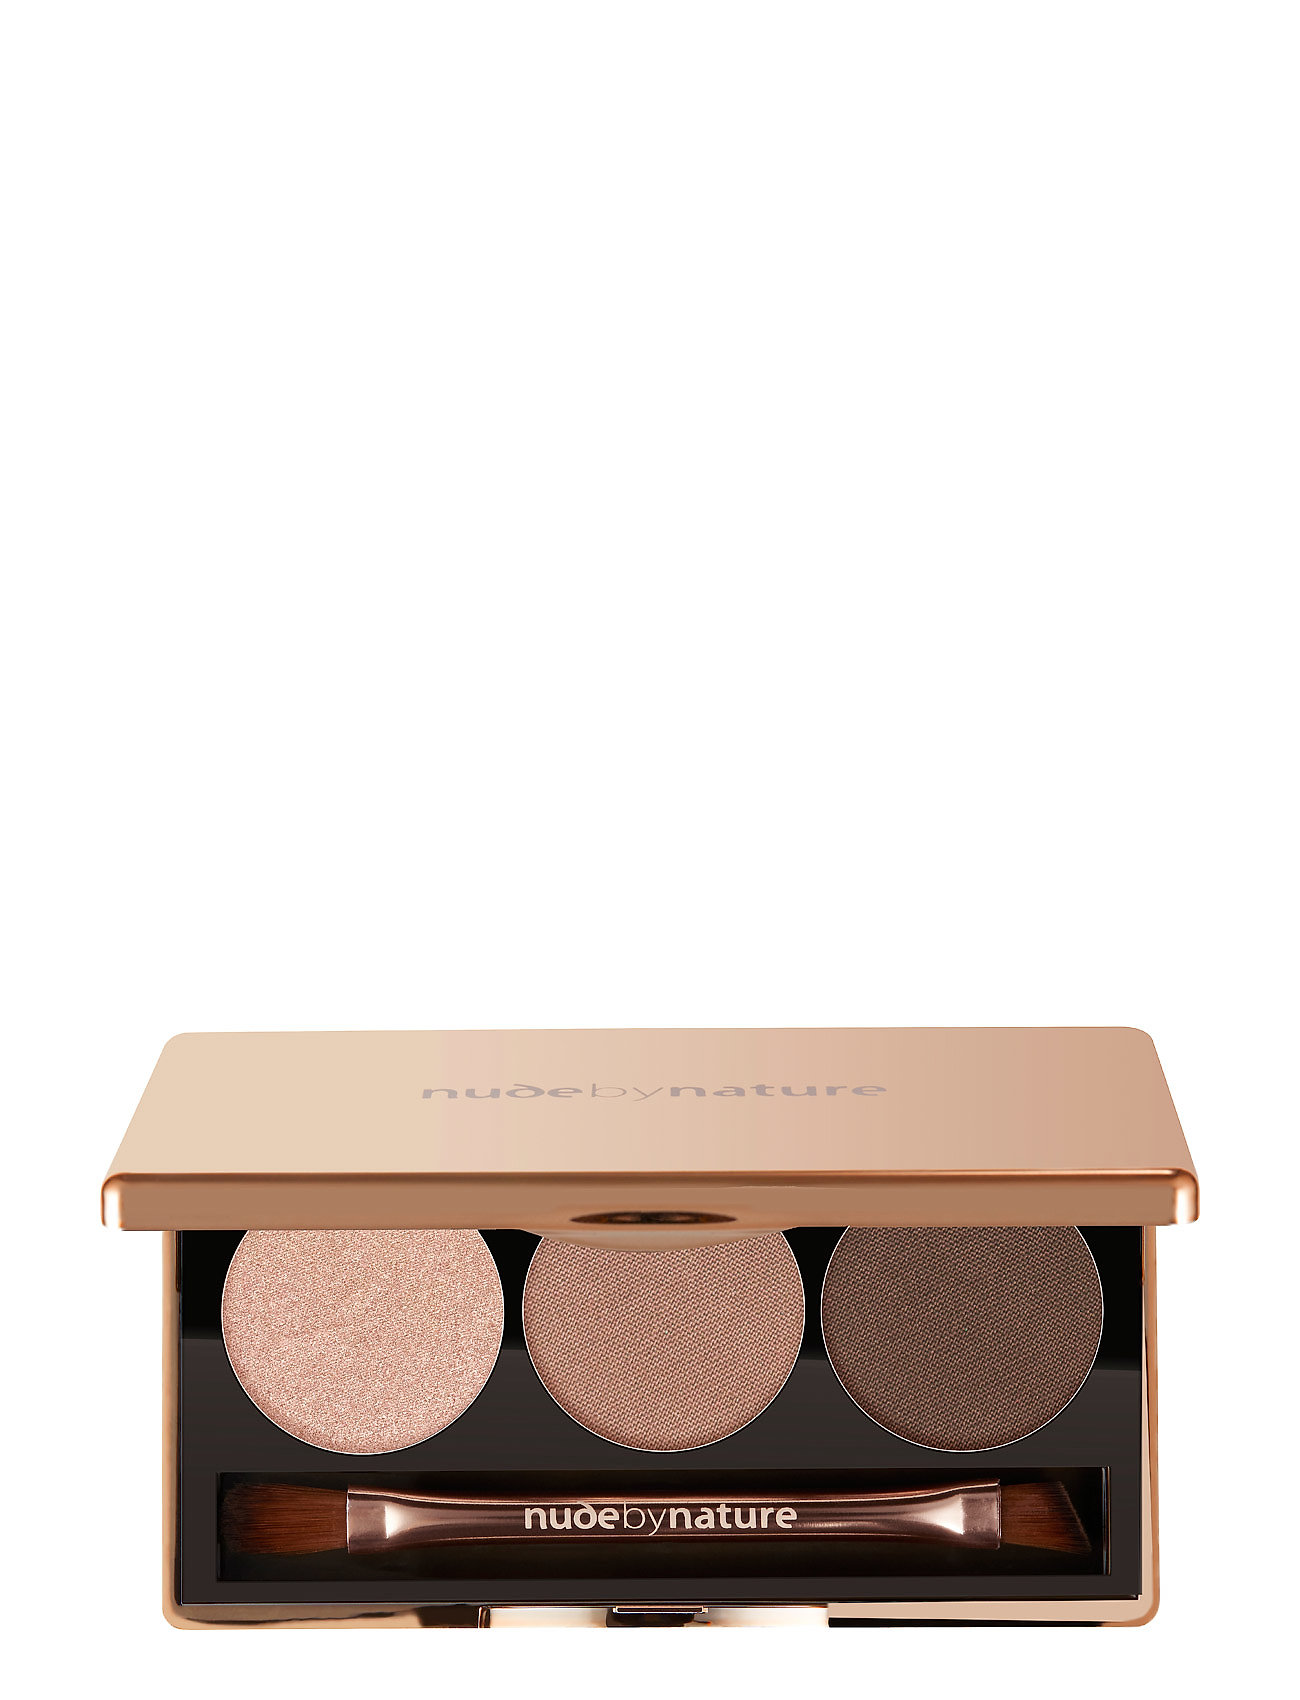 Image of Trio Eyeshadow 01 Nude Beauty WOMEN Makeup Eyes Eyeshadow Palettes Creme Nude By Nature (3430495911)